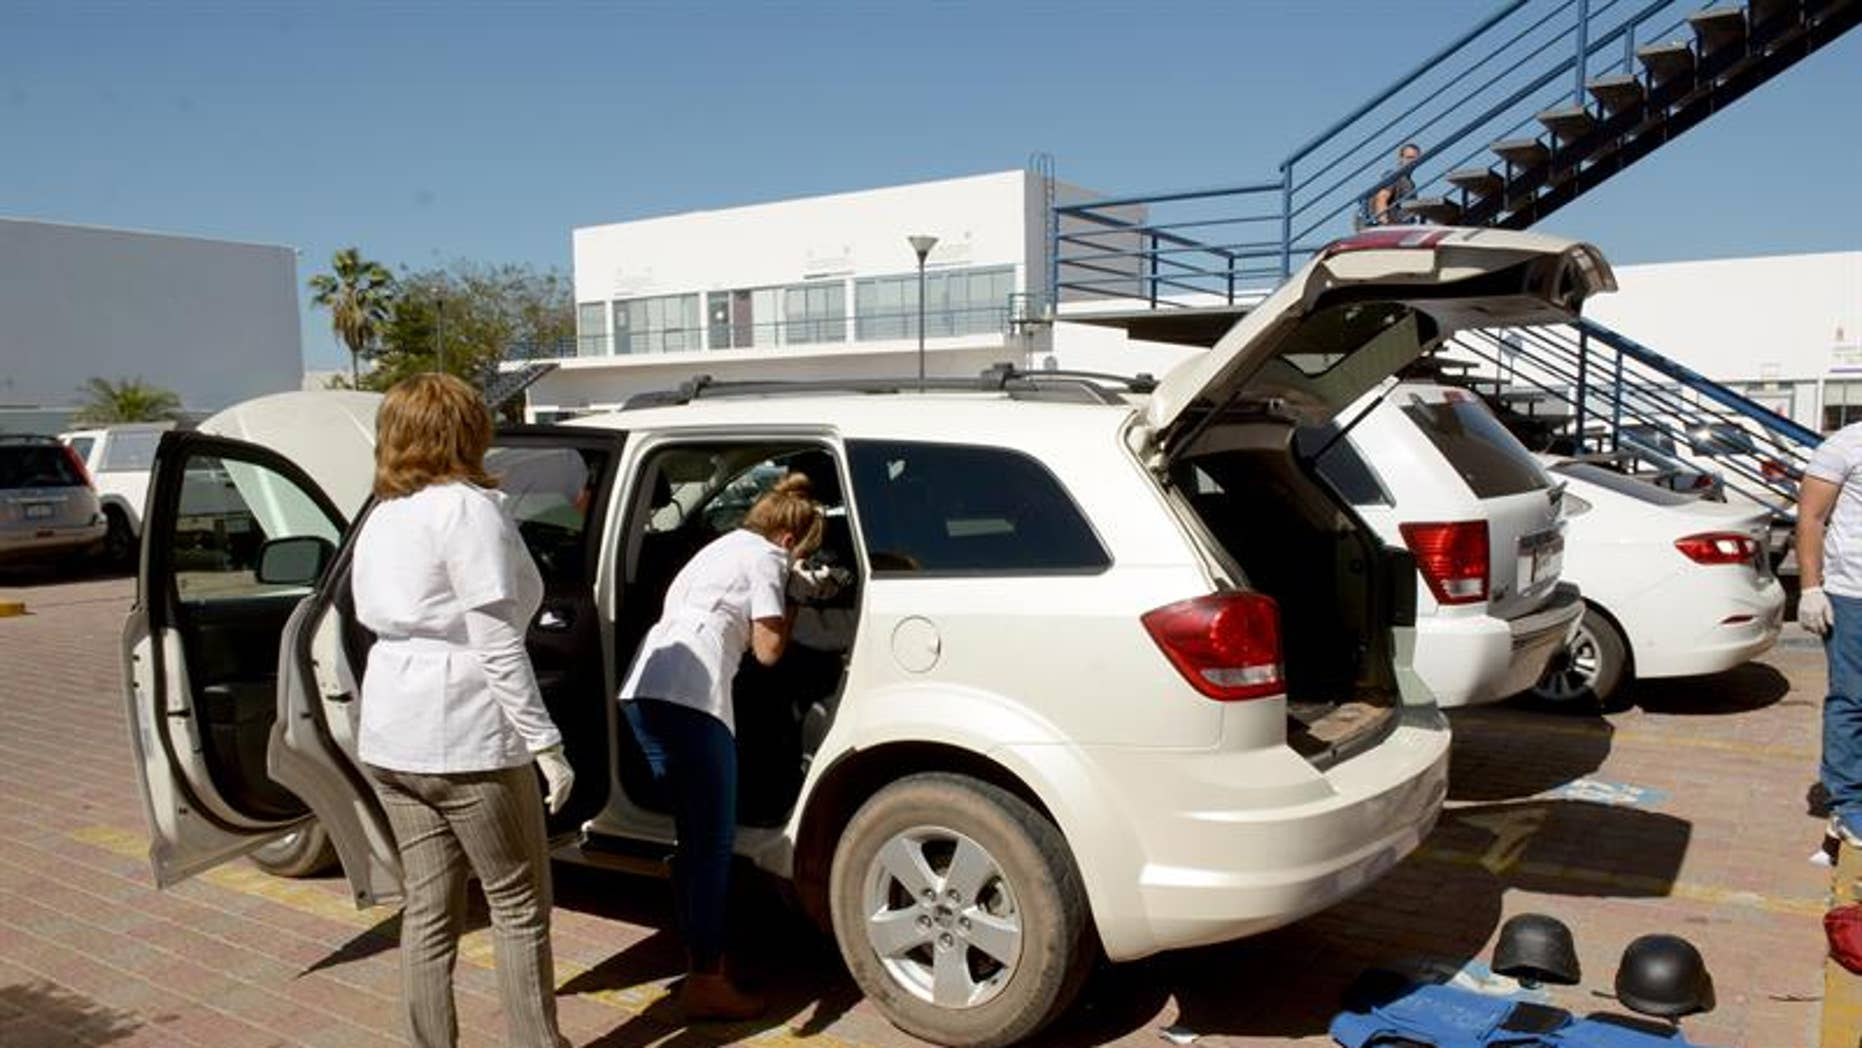 Mexican forensics inspect a vehicle of Al Jazeera TV Channel after being robbed in Novalato, Mexico, on March 29, 2017.